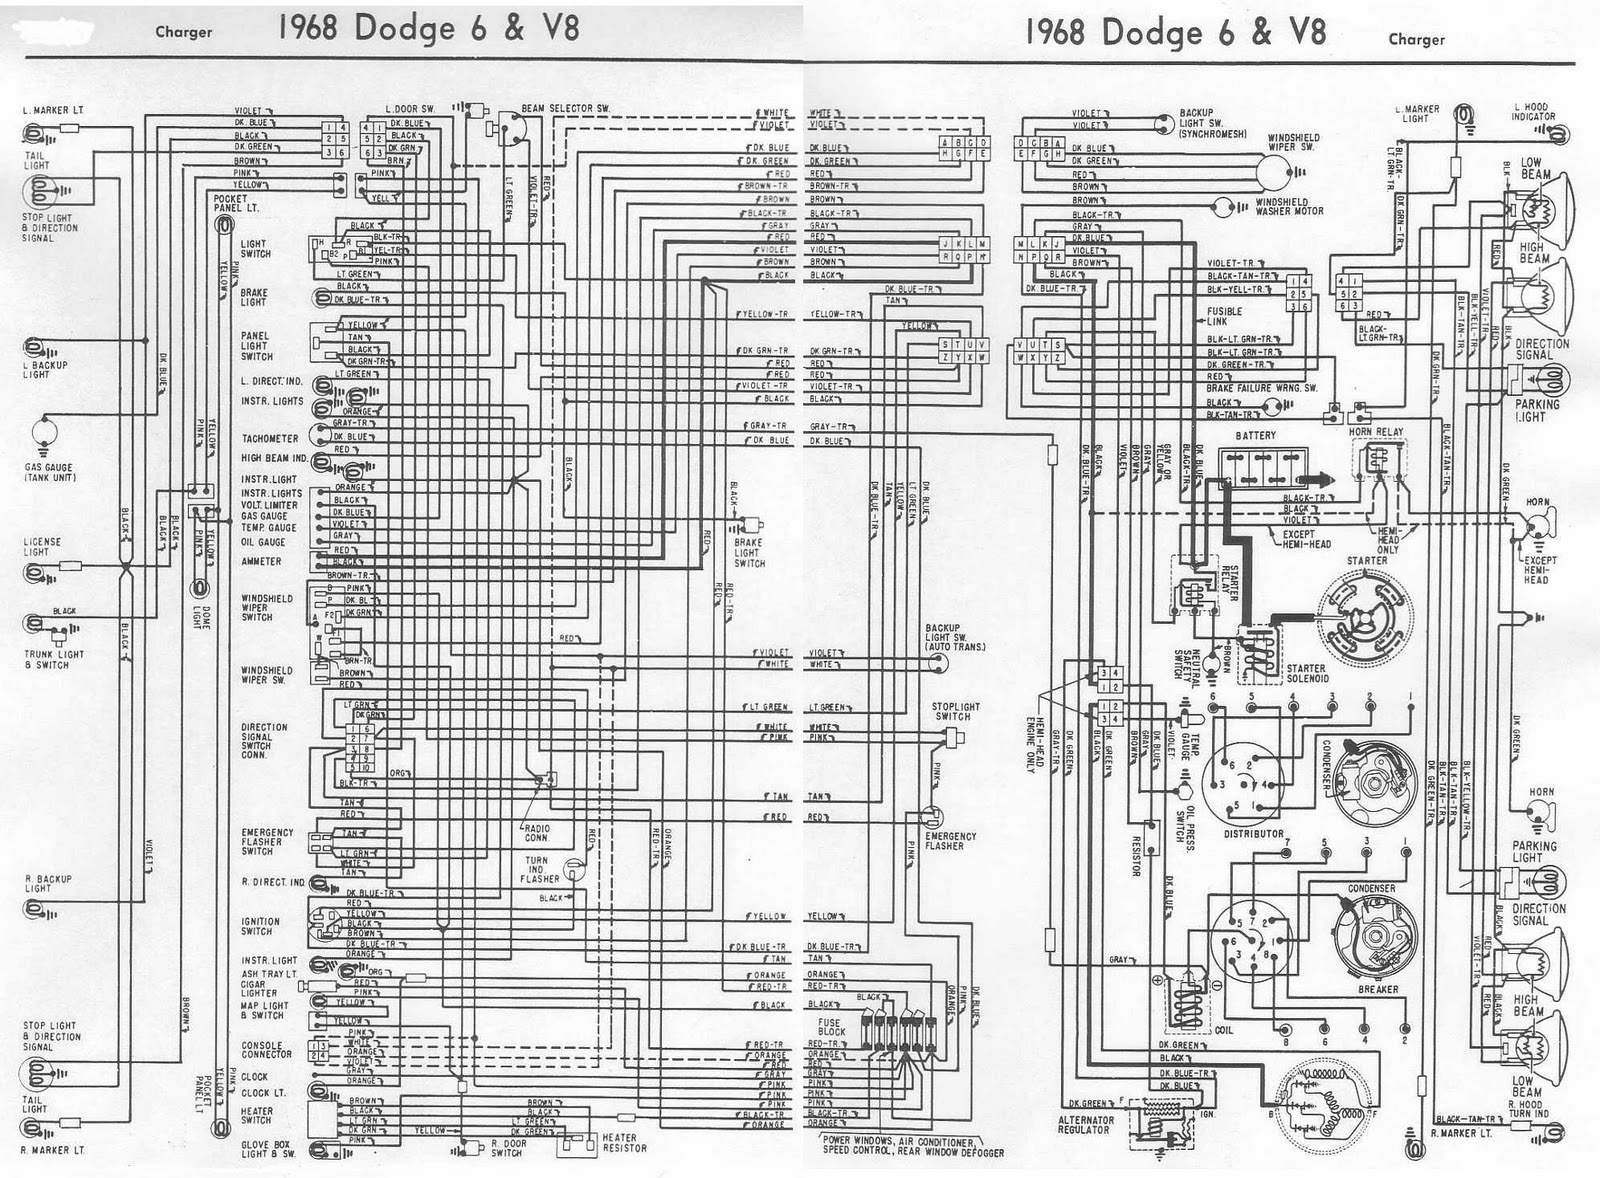 Dodge+Charger+1968+6+and+V8+Complete+Electrical+Wiring+Diagram dodge charger 1968 6 and v8 complete electrical wiring diagram vs v8 wiring diagram at mr168.co